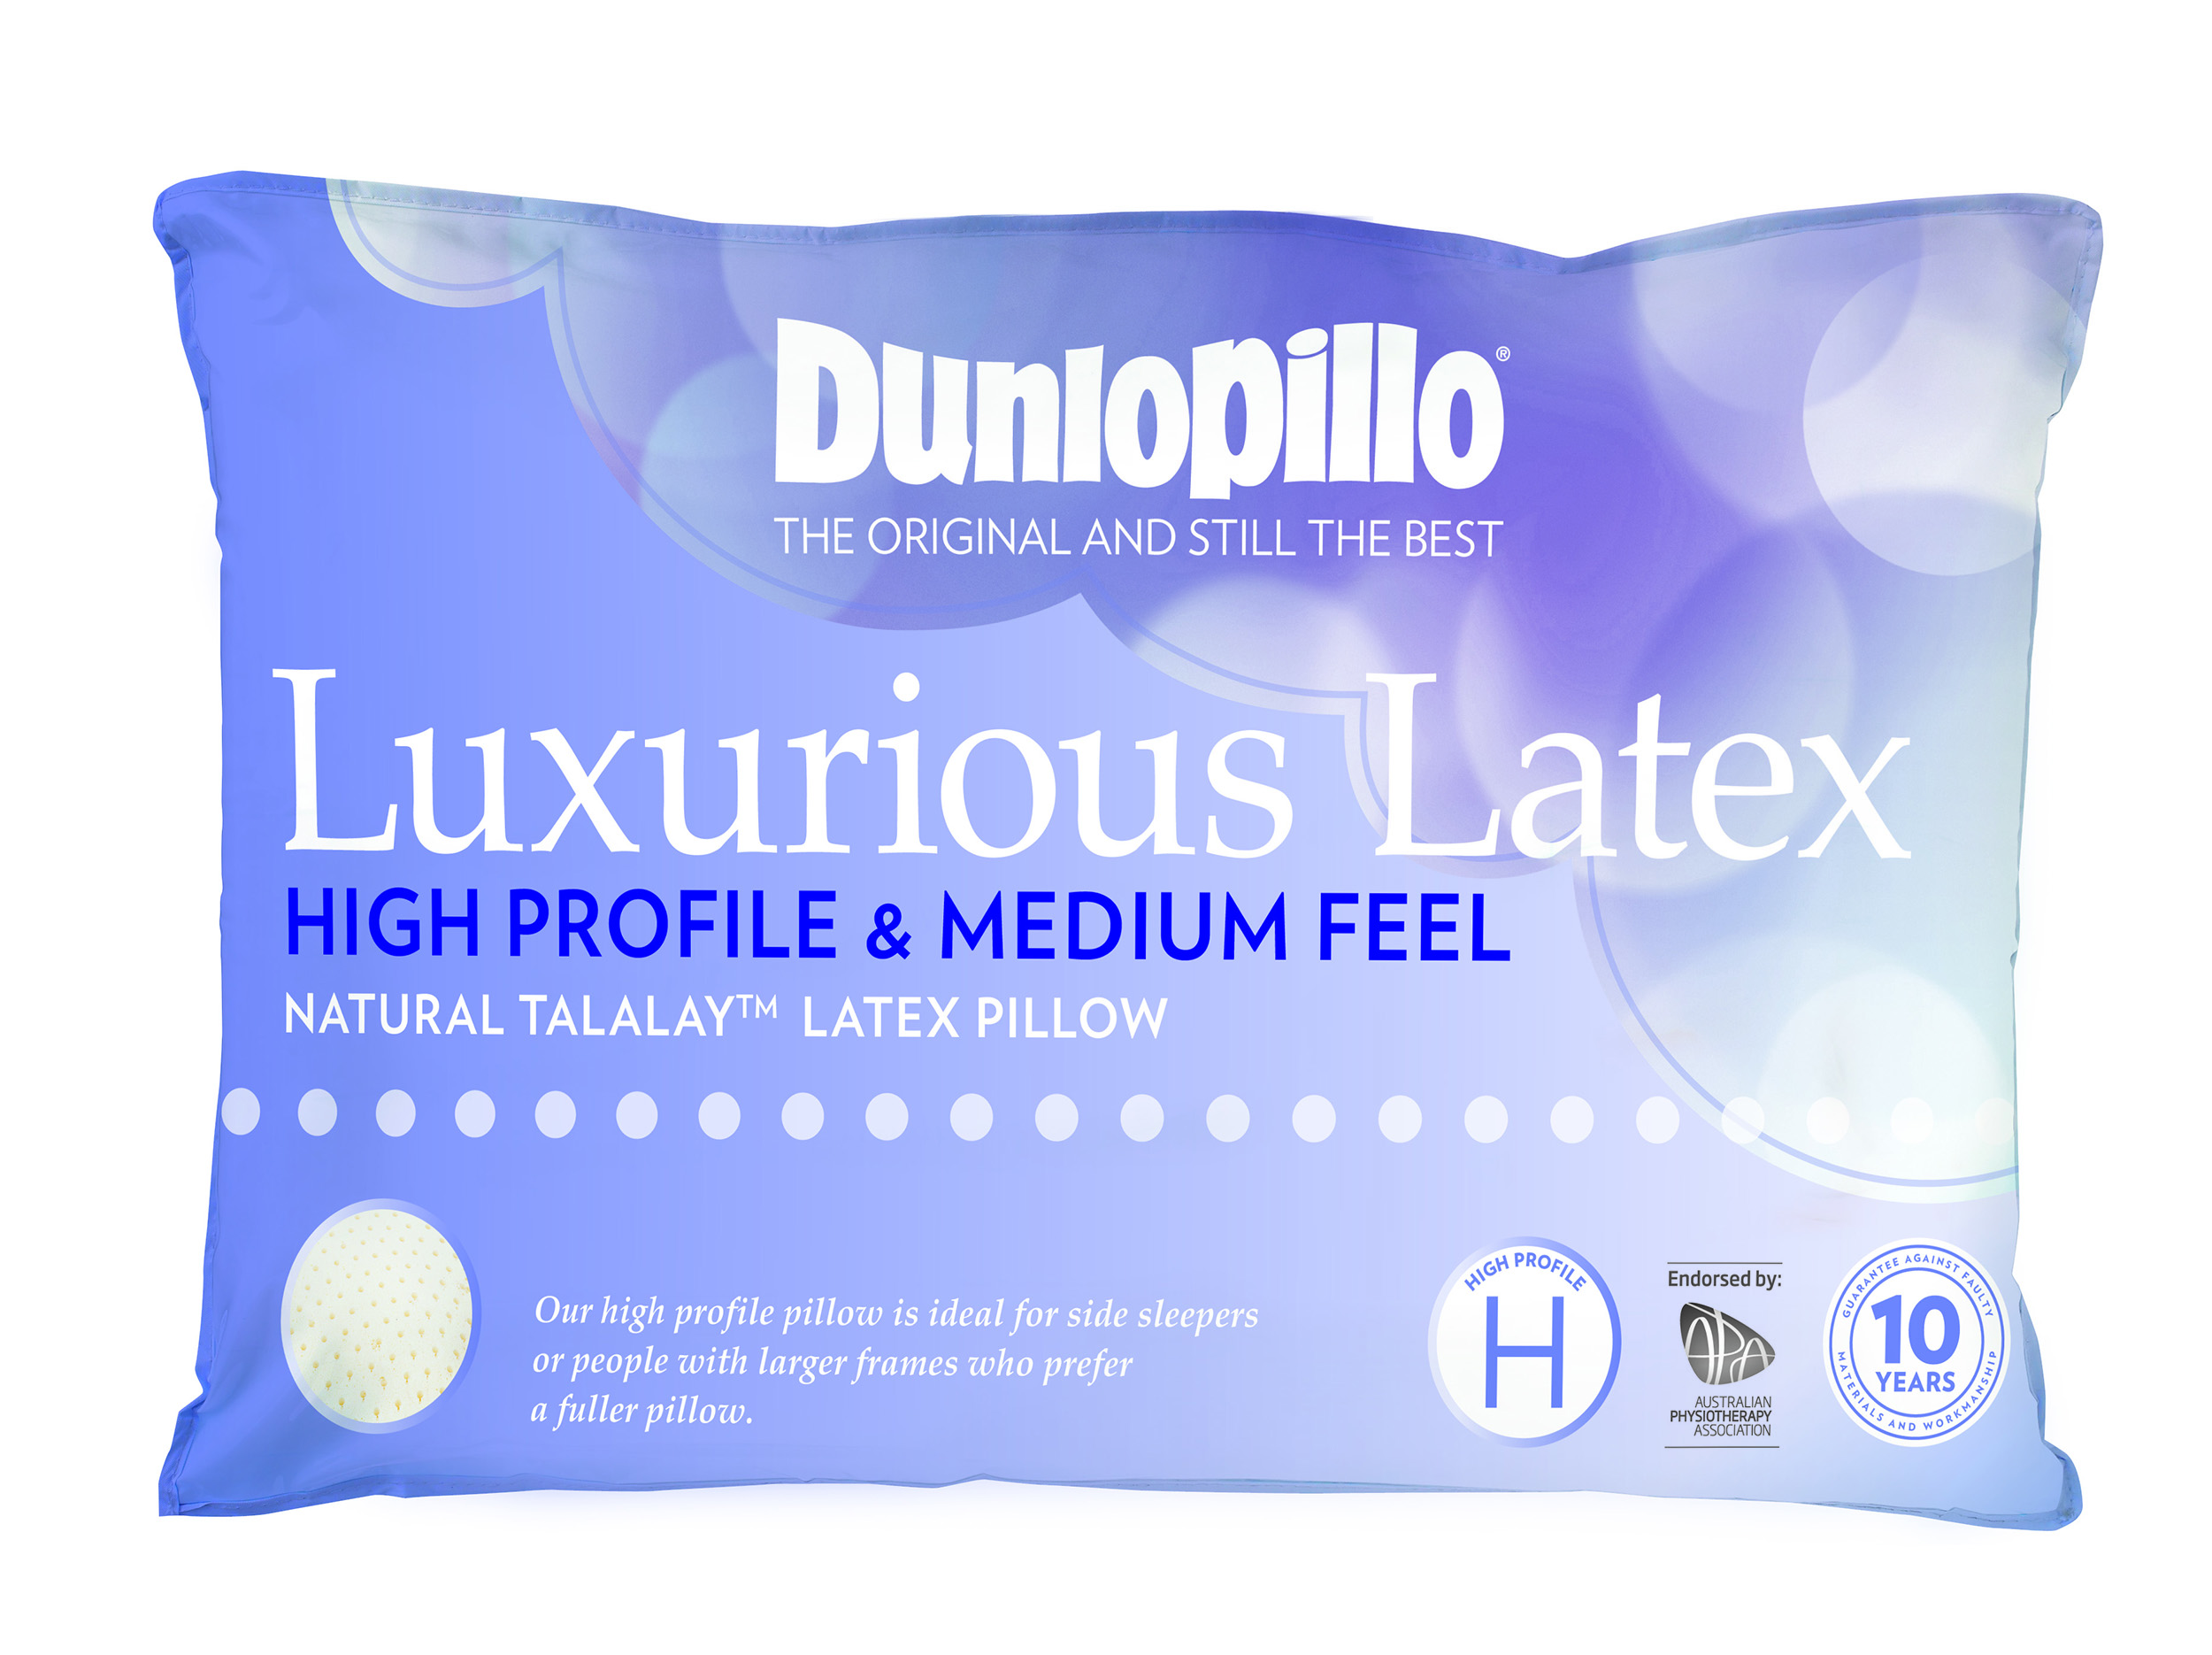 Dunlopillo Luxurious Latex High Profile Medium Feel Pillow